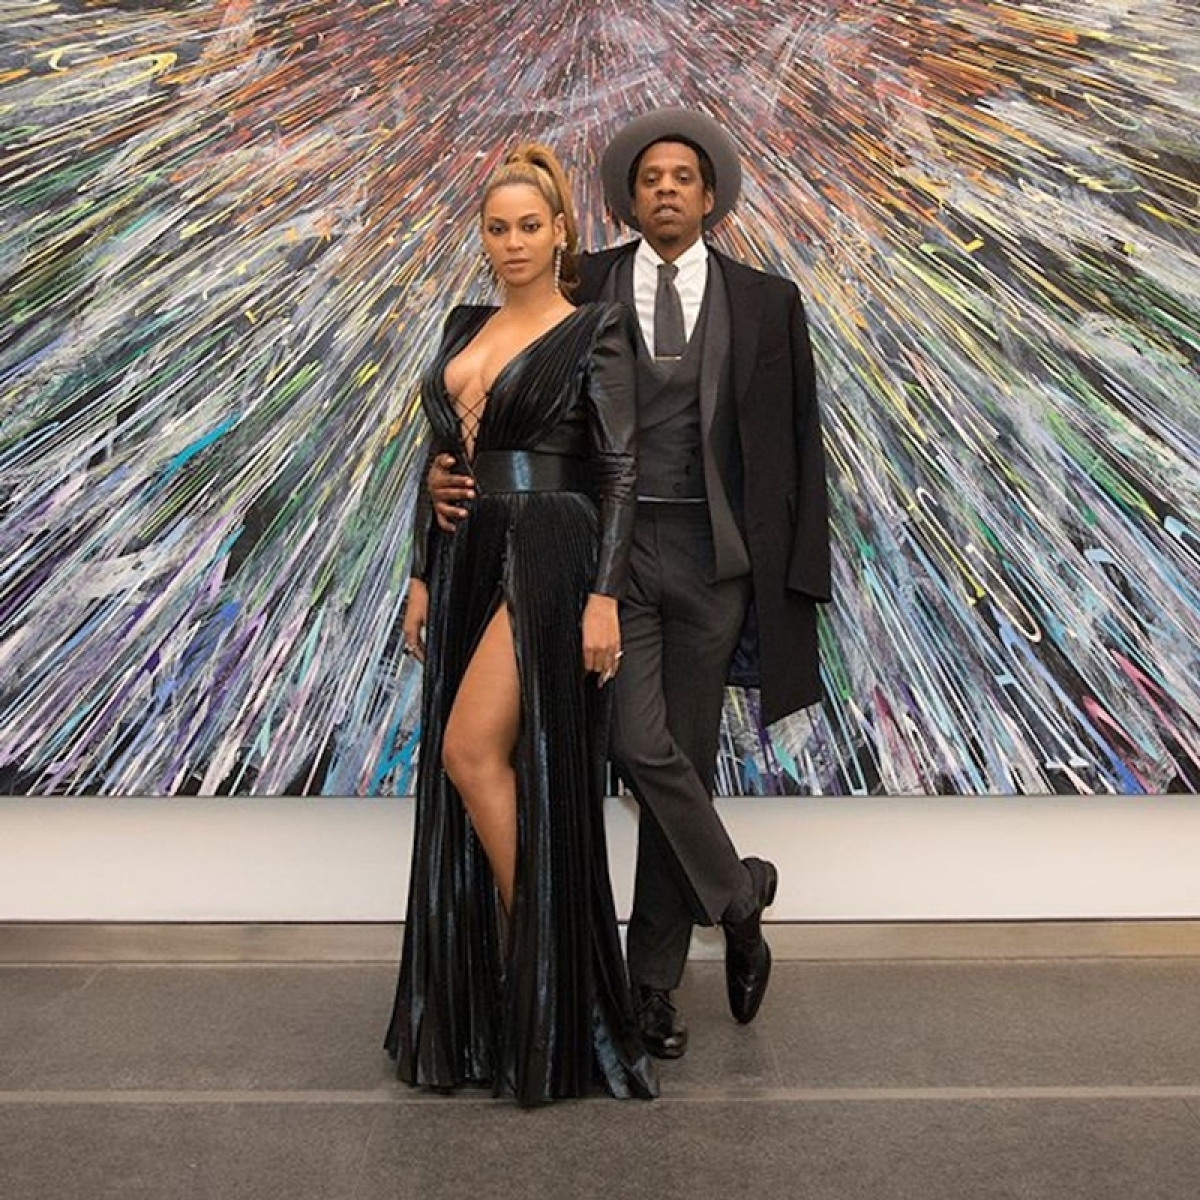 Rapper Jay-Z says they chose to fight for their love instead of parting ways